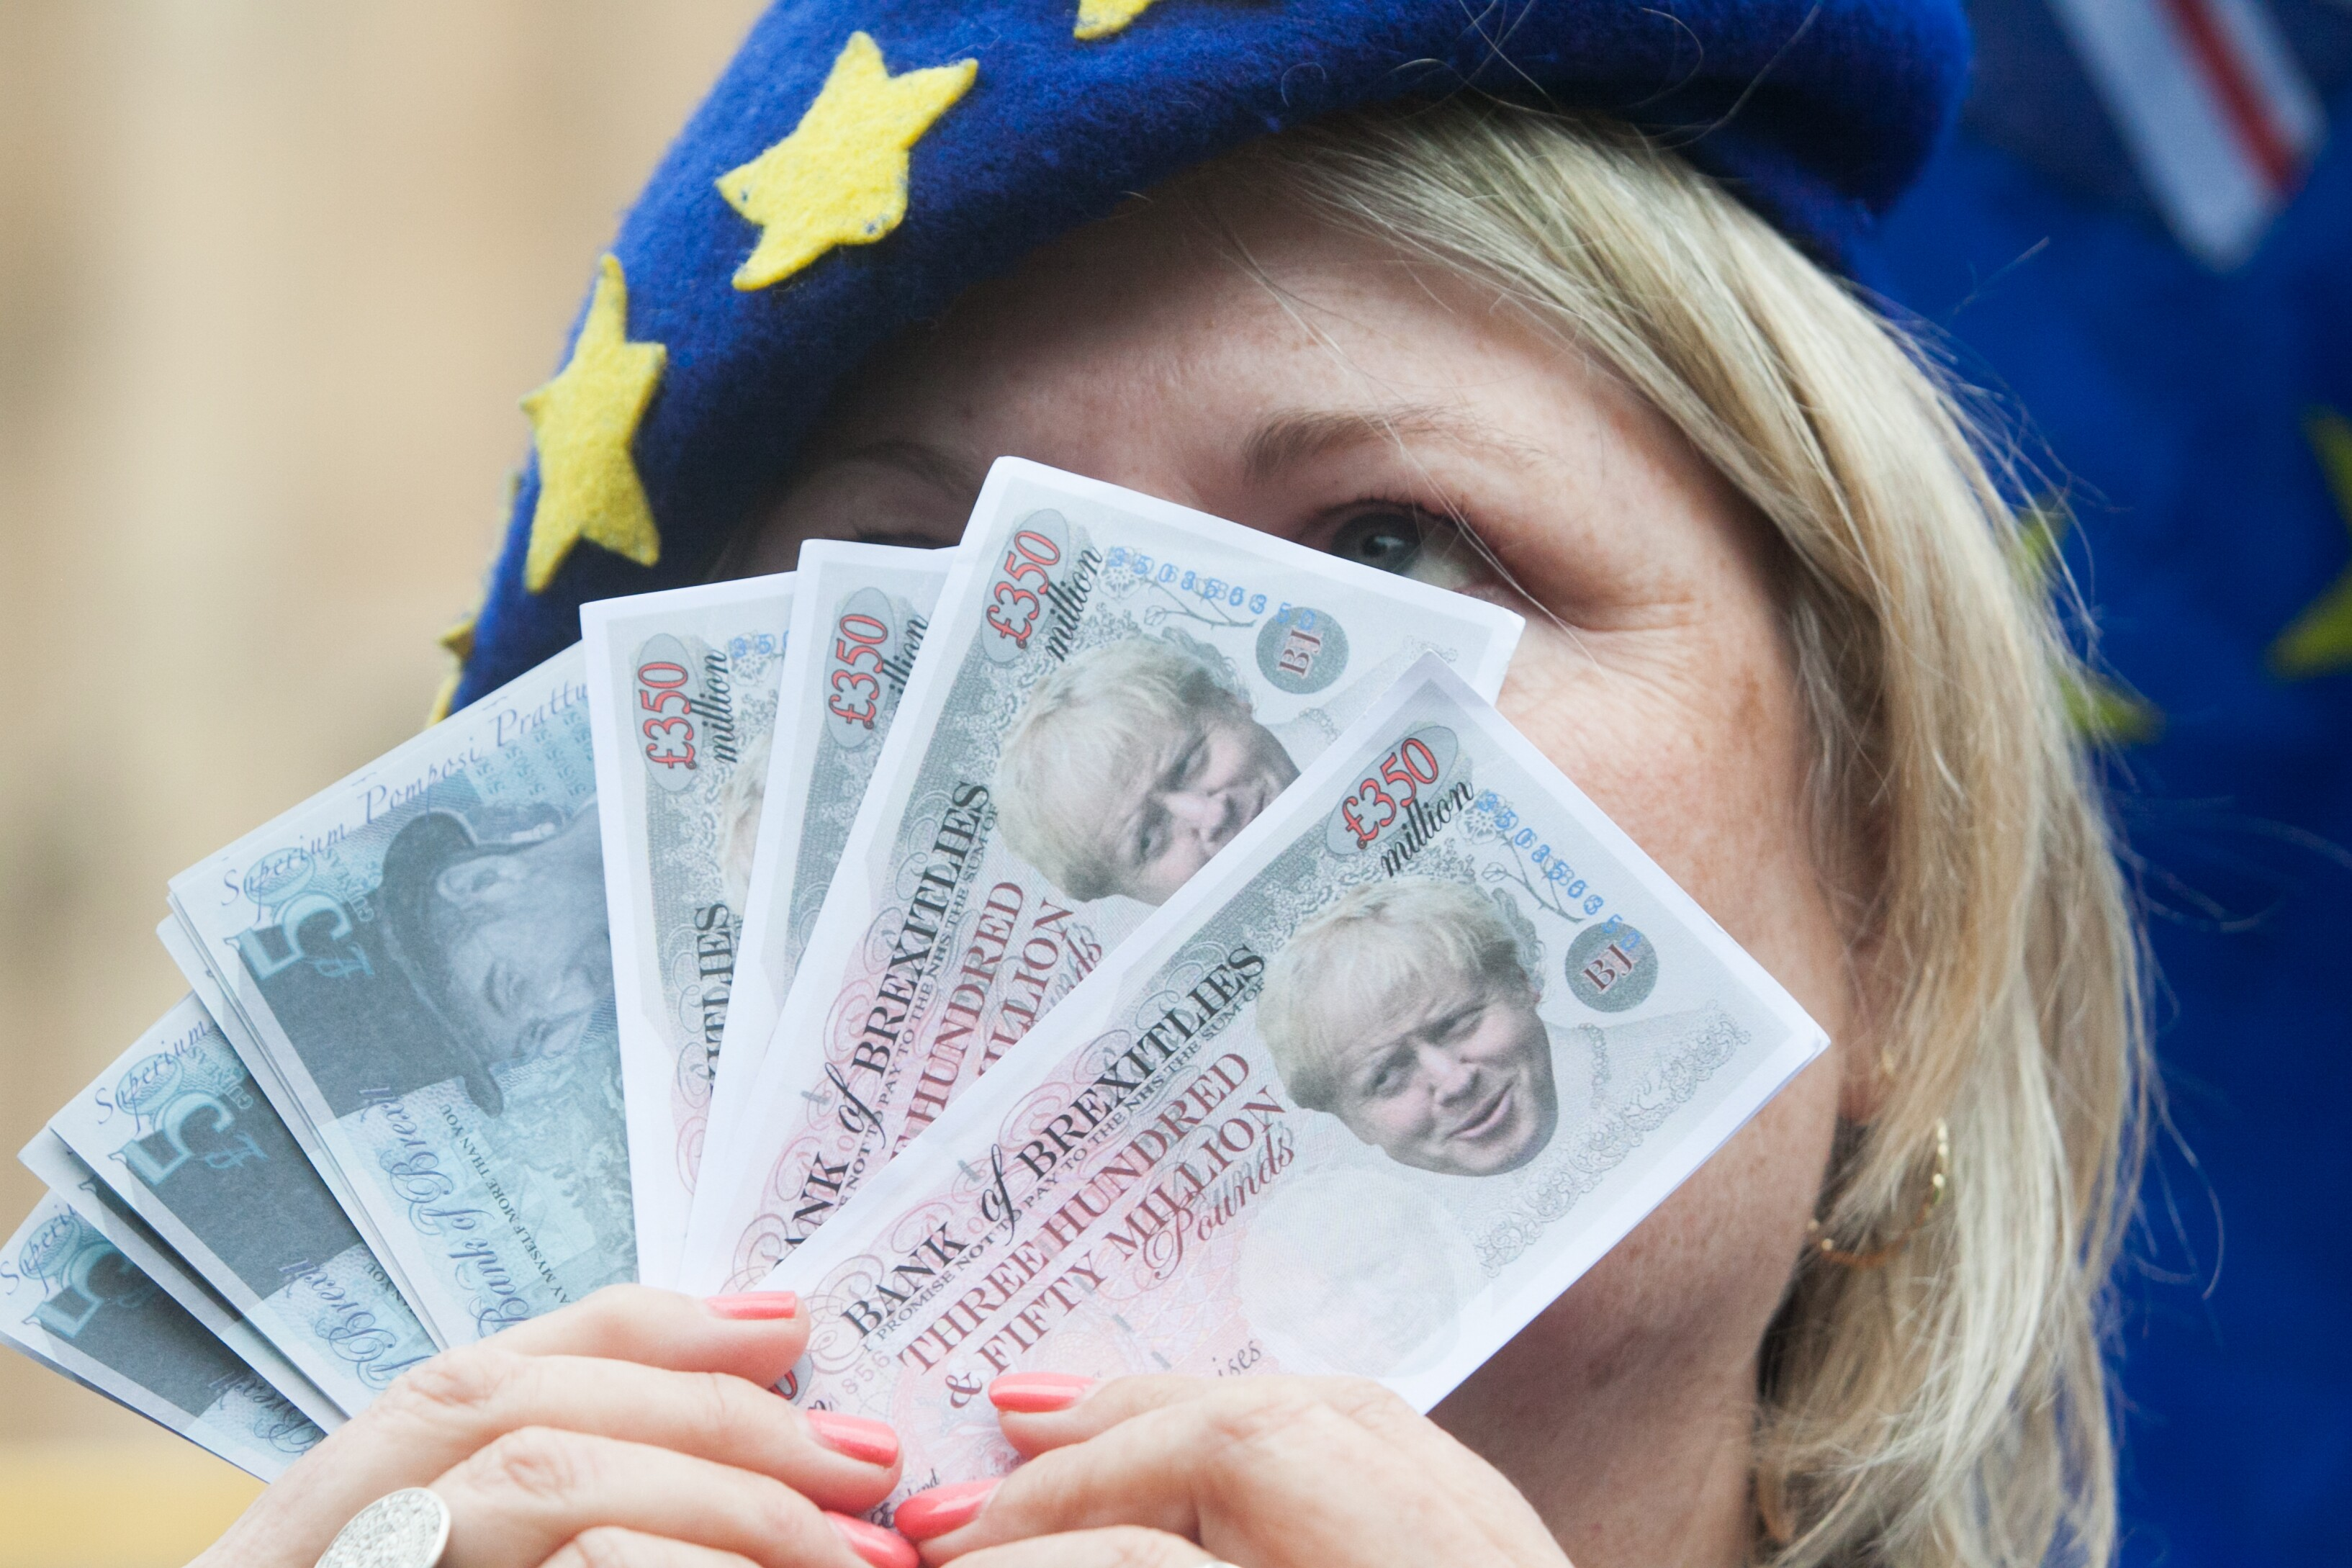 A Pro EU protester holds fake bank notes of Boris Johnson and Jacob Rees Mogg outside Parliament in June 2018 Barcroft Media/Barcroft Media via Getty Images